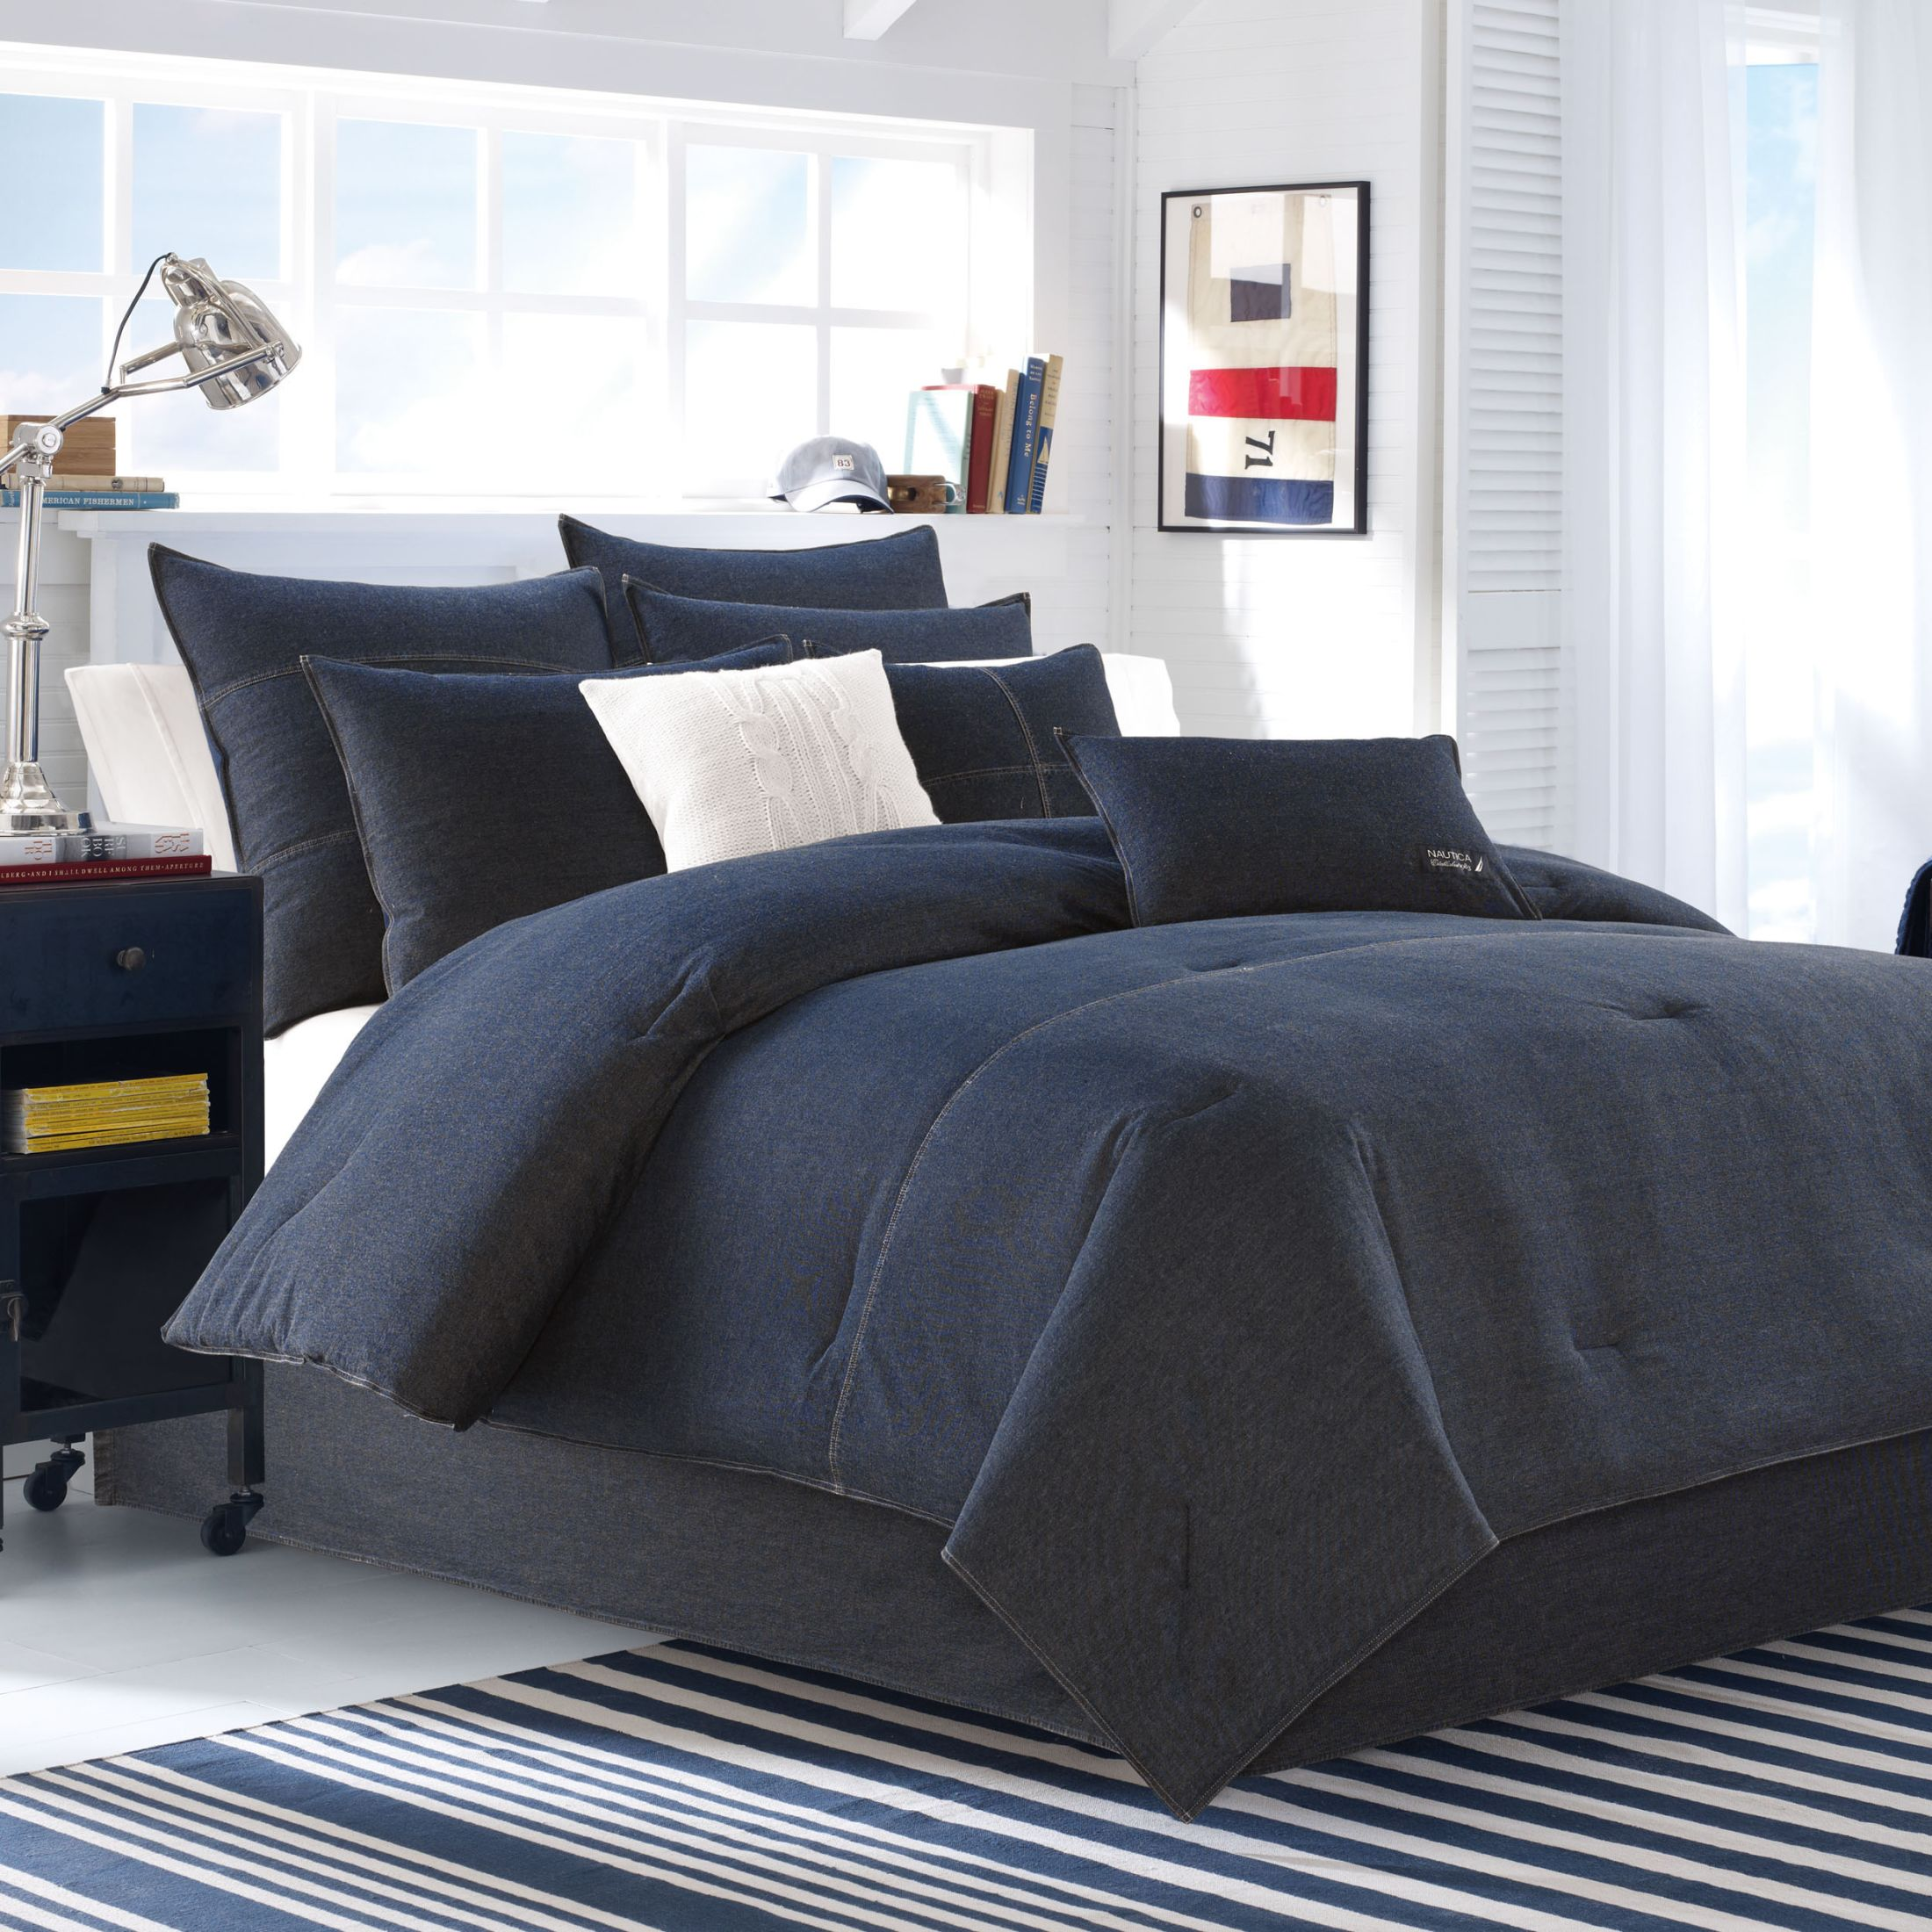 Bed Comforter Sets | Navy Blue Comforter | Jcp Bedding